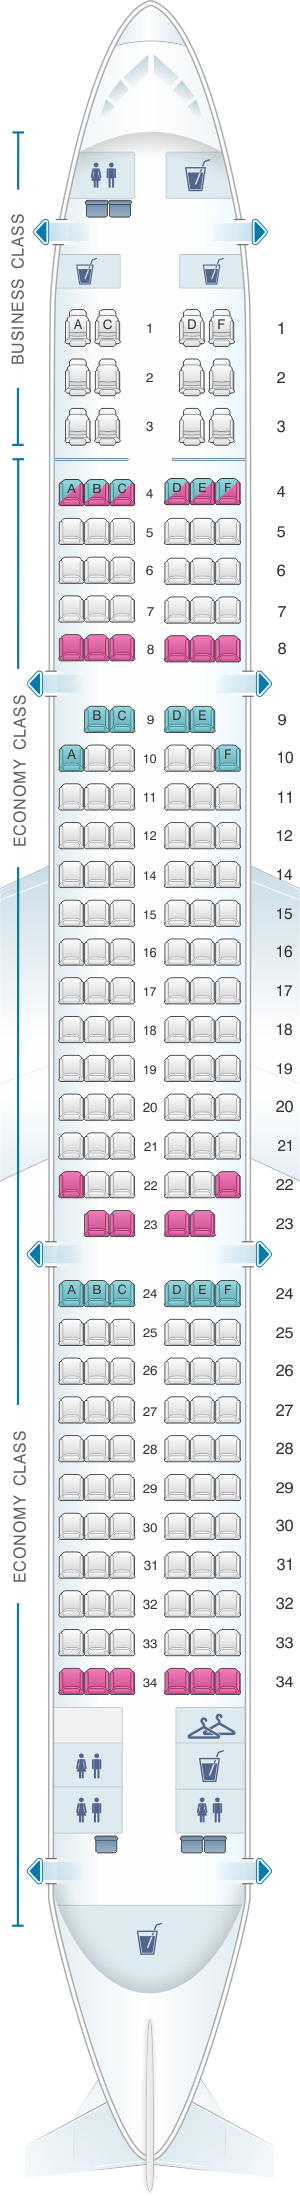 Seat map for Turkish Airlines Airbus A321 200